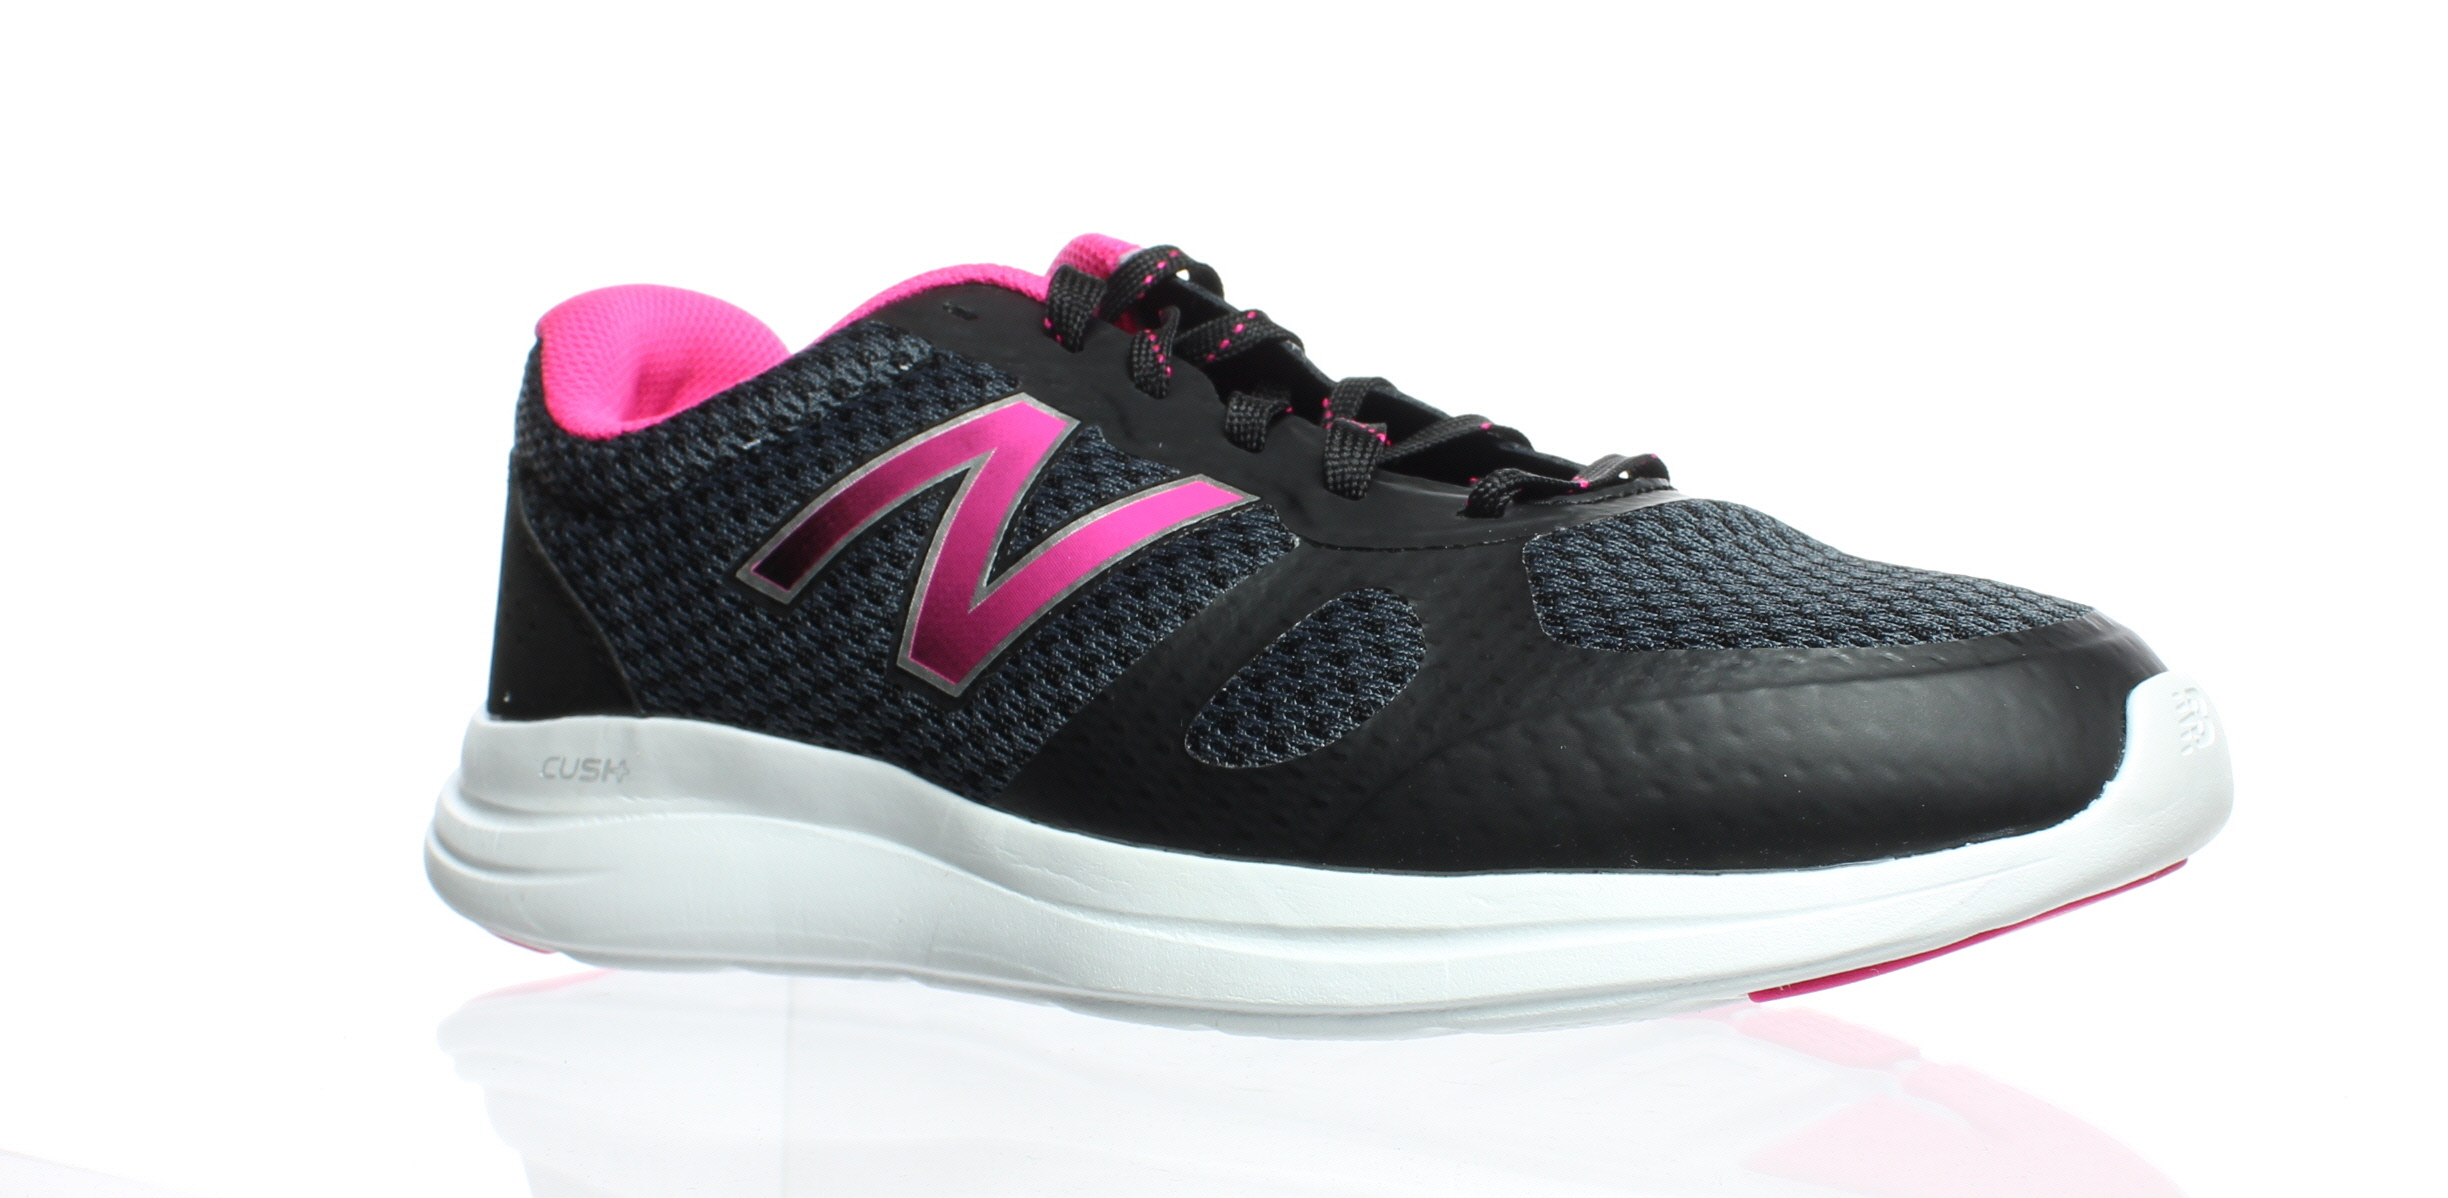 Details about New Balance Womens Wversrb1 Black Pink Running Shoes Size 10  (88572) c08beed61